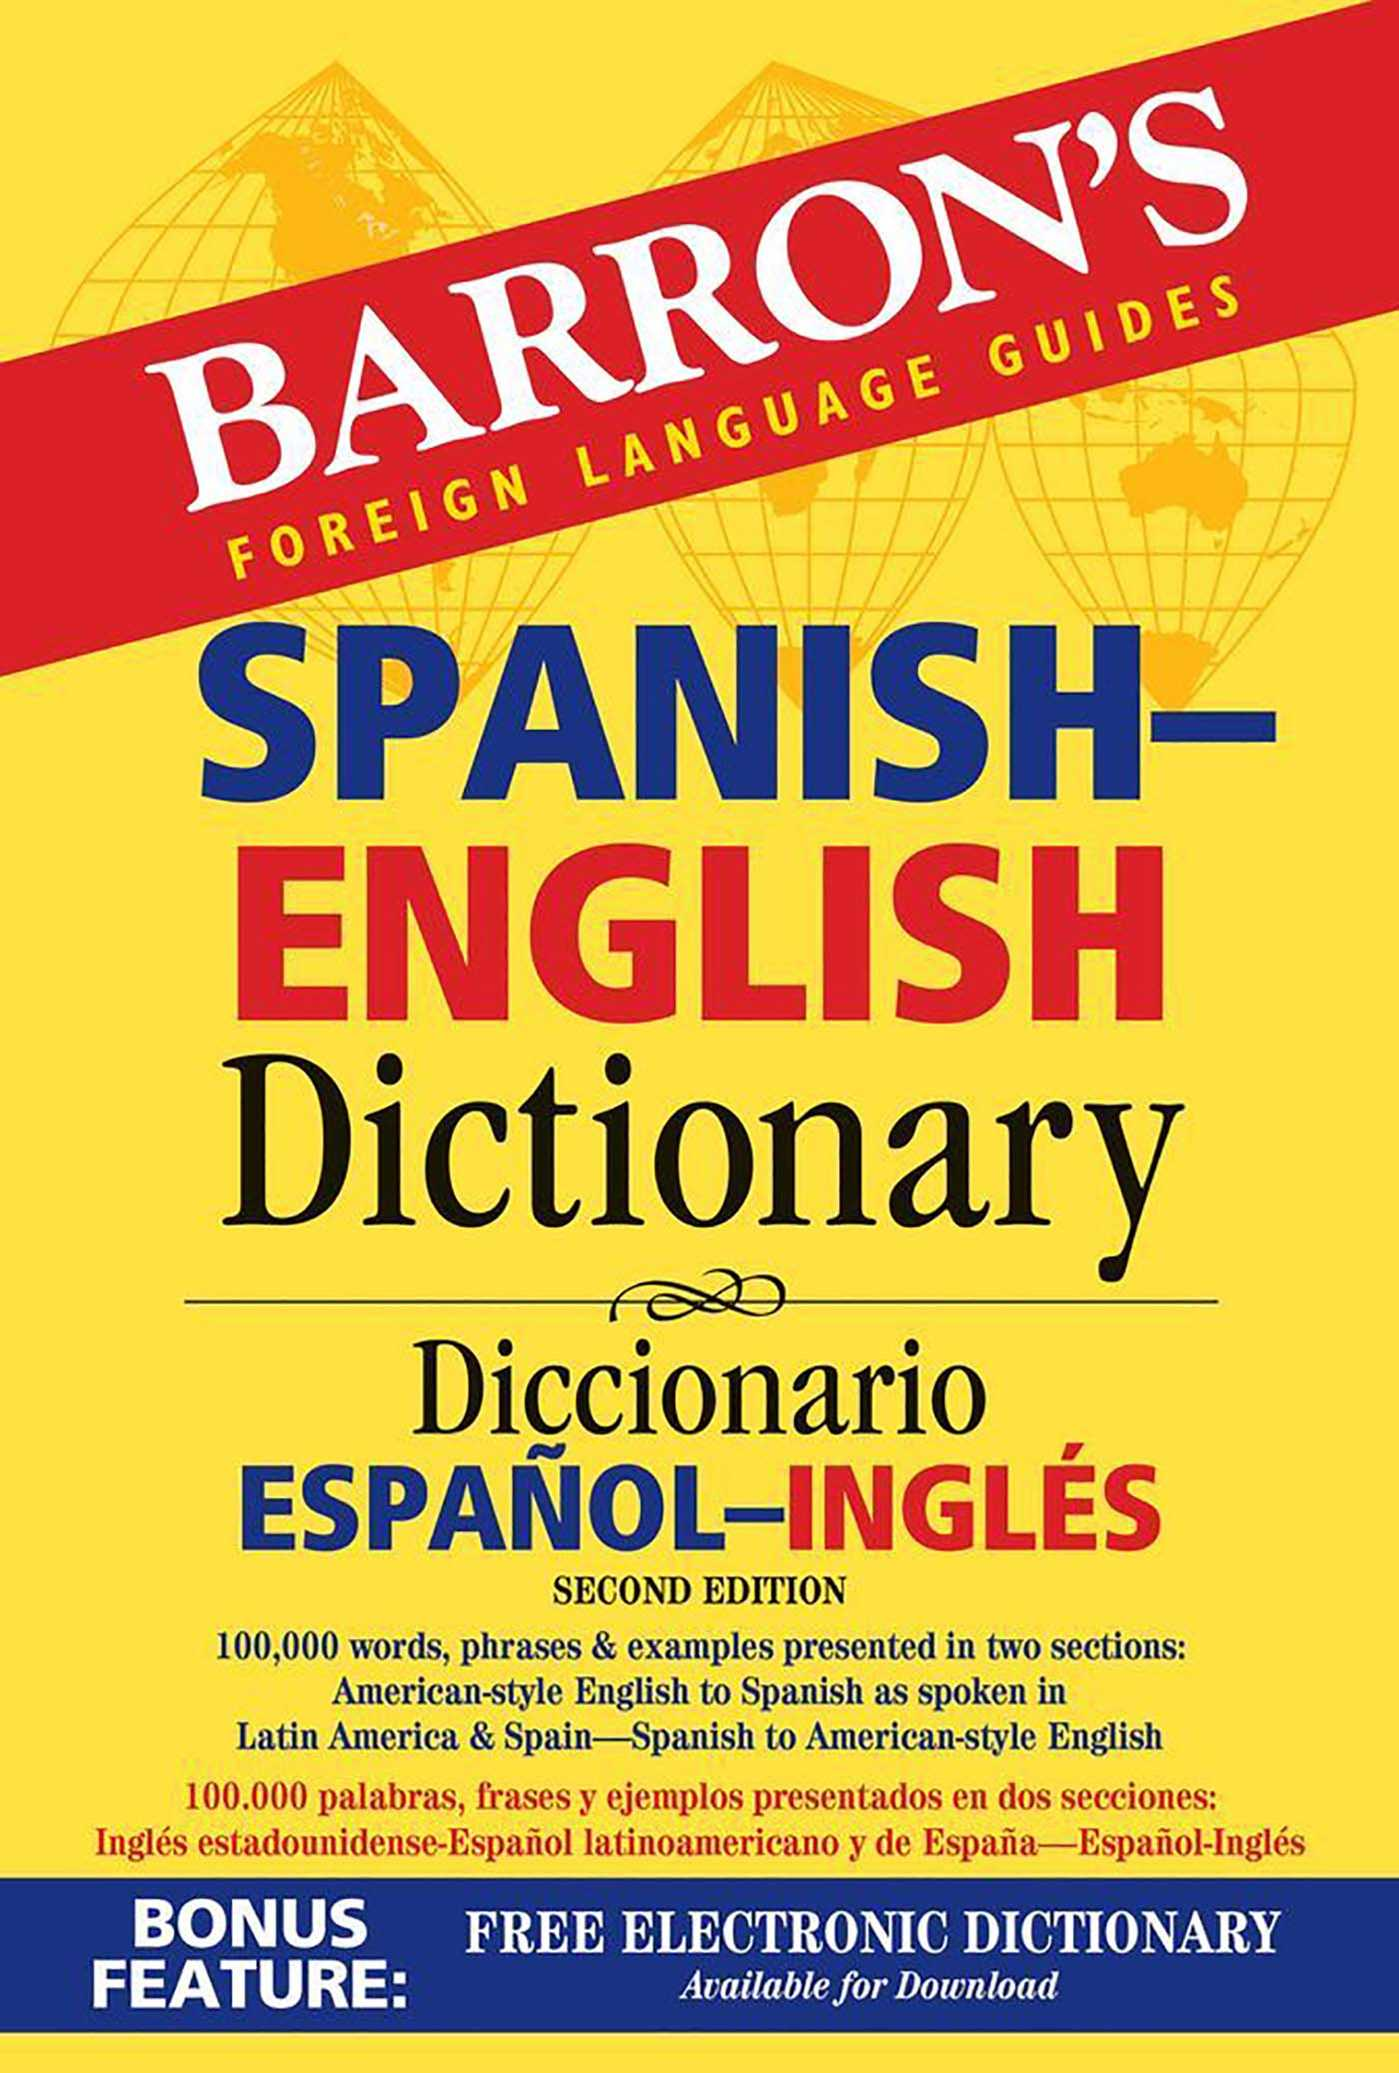 Barron's Spanish English Dictionary Book by Ursula